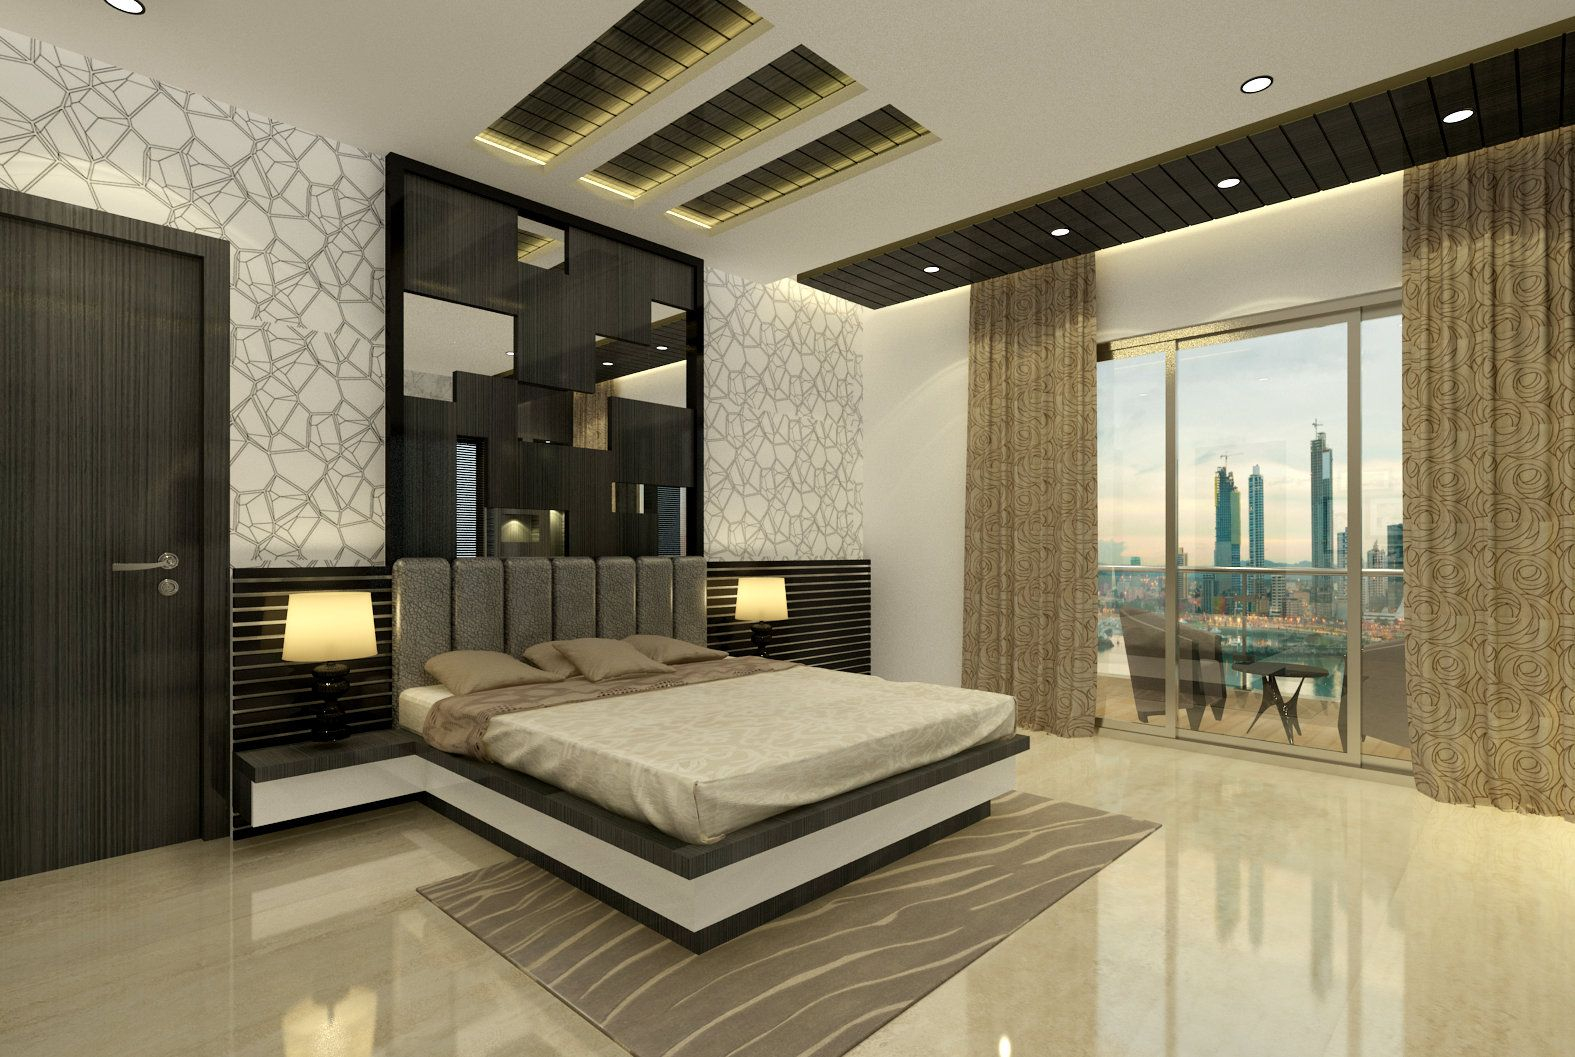 Master Bedroom We Design And Execute The Same Contact Us For All Interior Work Ceiling Design Bedroom Modern Bedroom Interior Bedroom Furniture Design